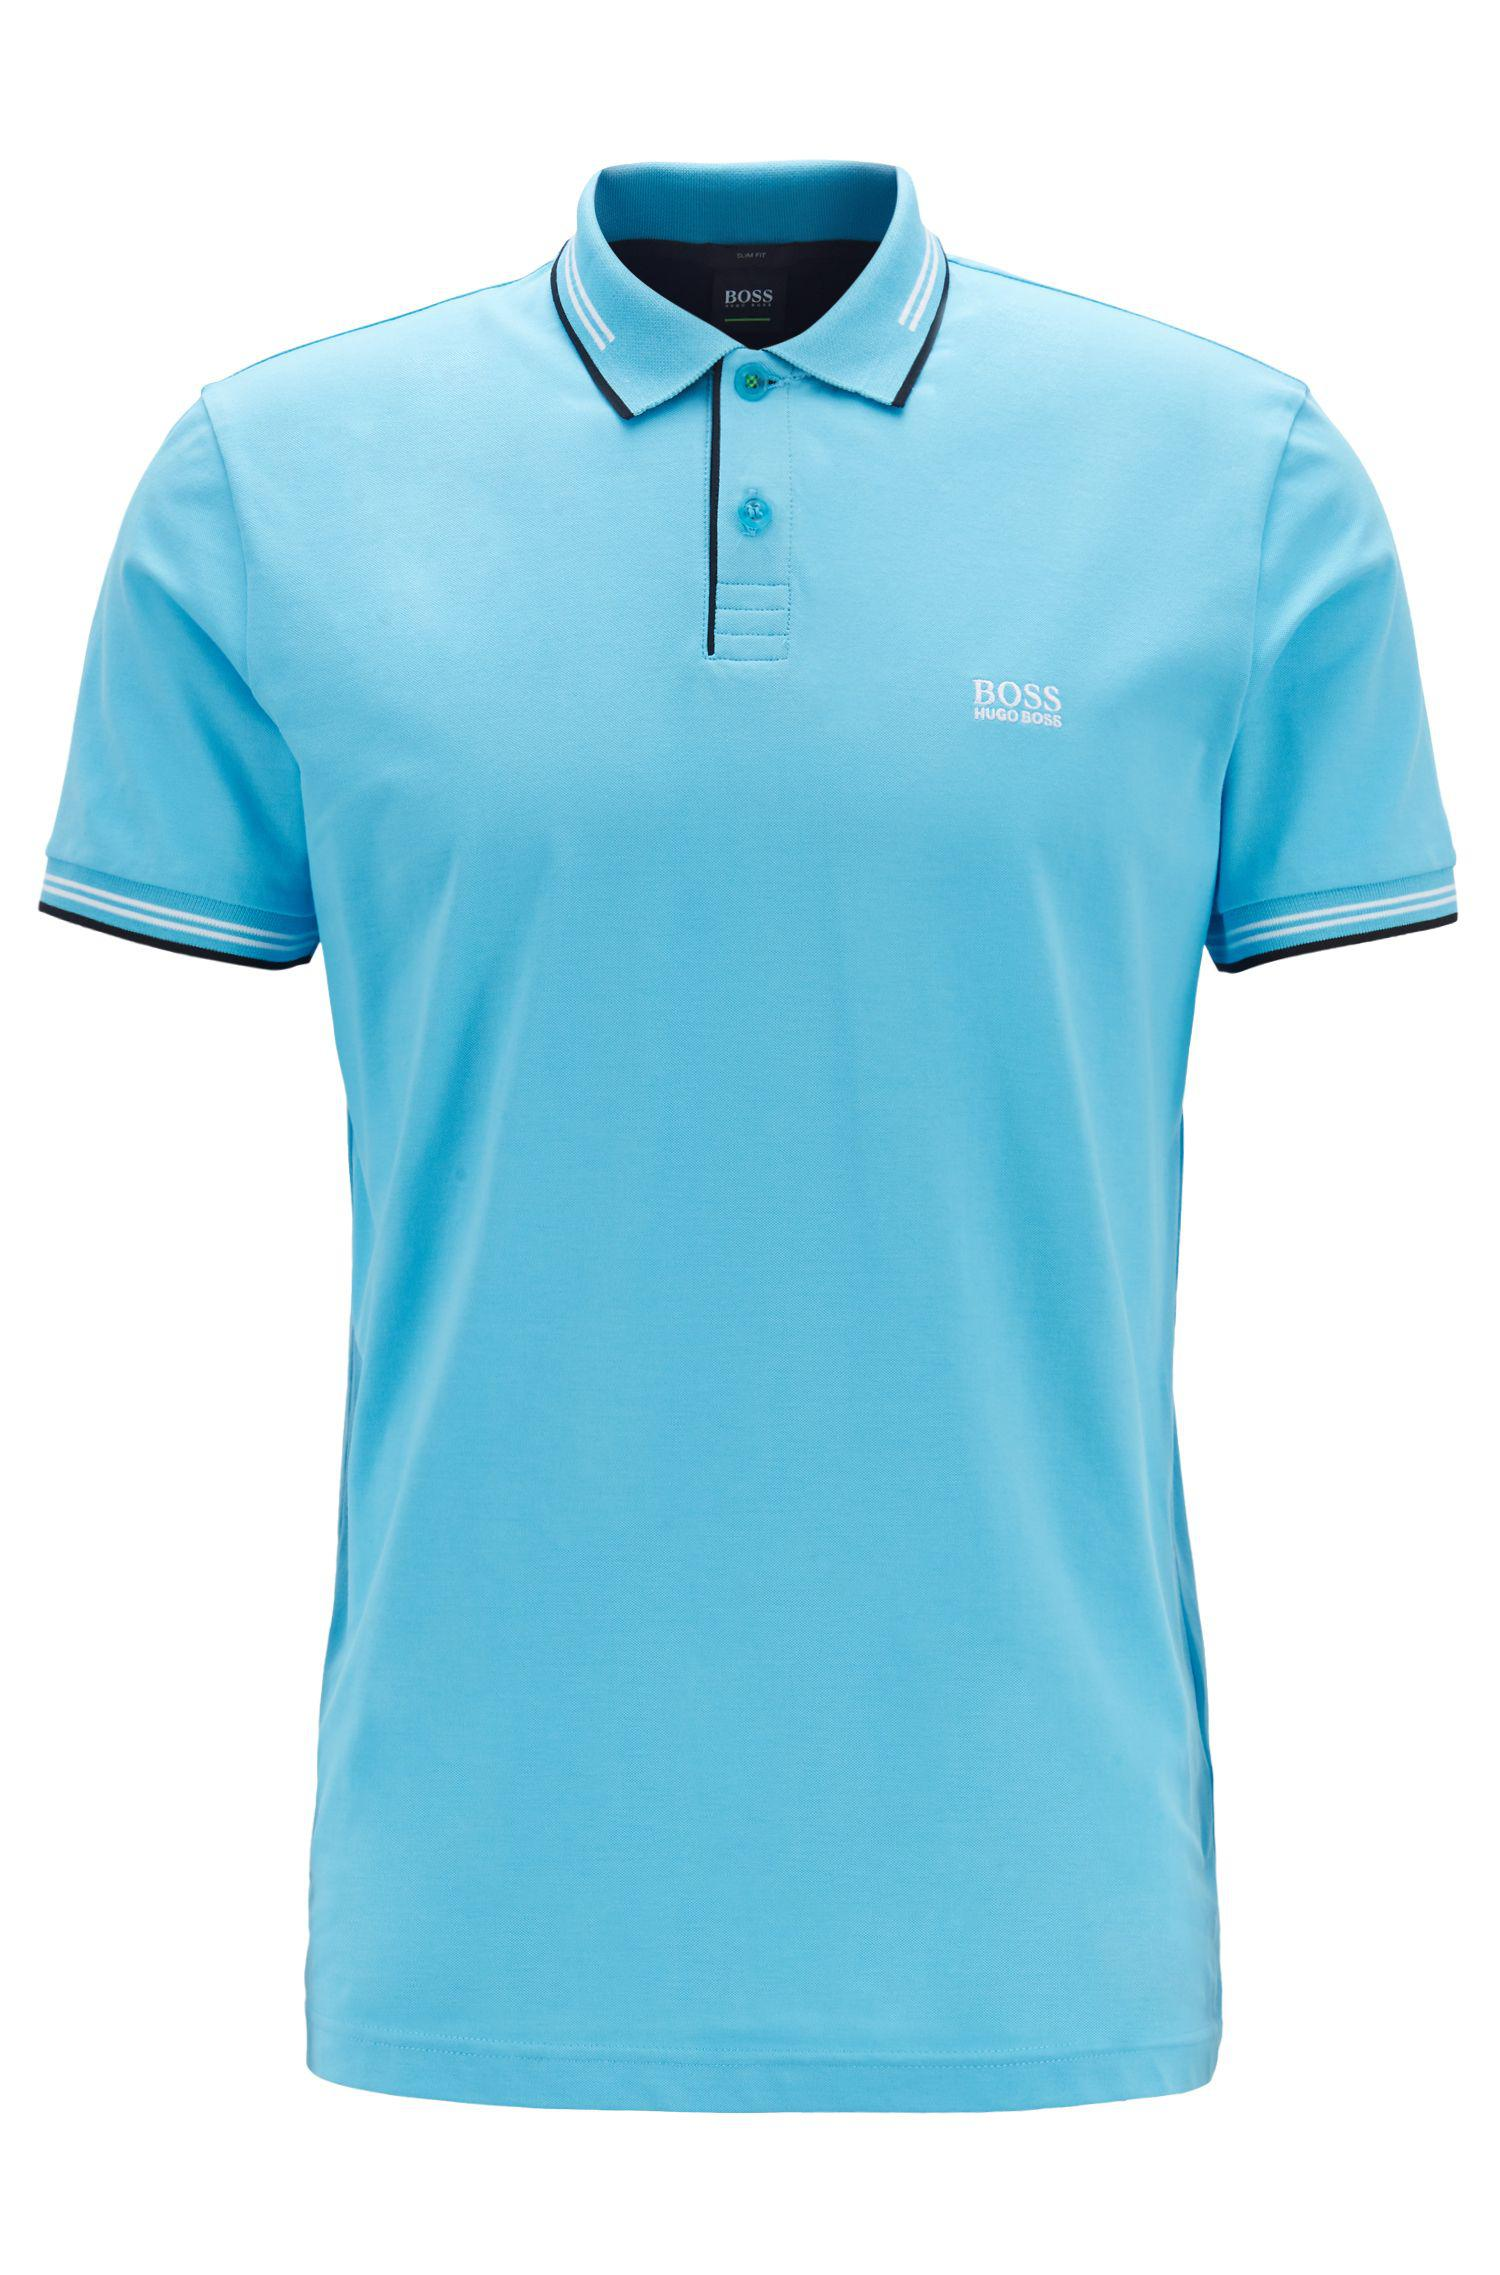 8b2f86c3a5300 BOSS - Blue Slim-fit Stretch-cotton Polo Shirt With Contrast Tipping for  Men. View fullscreen